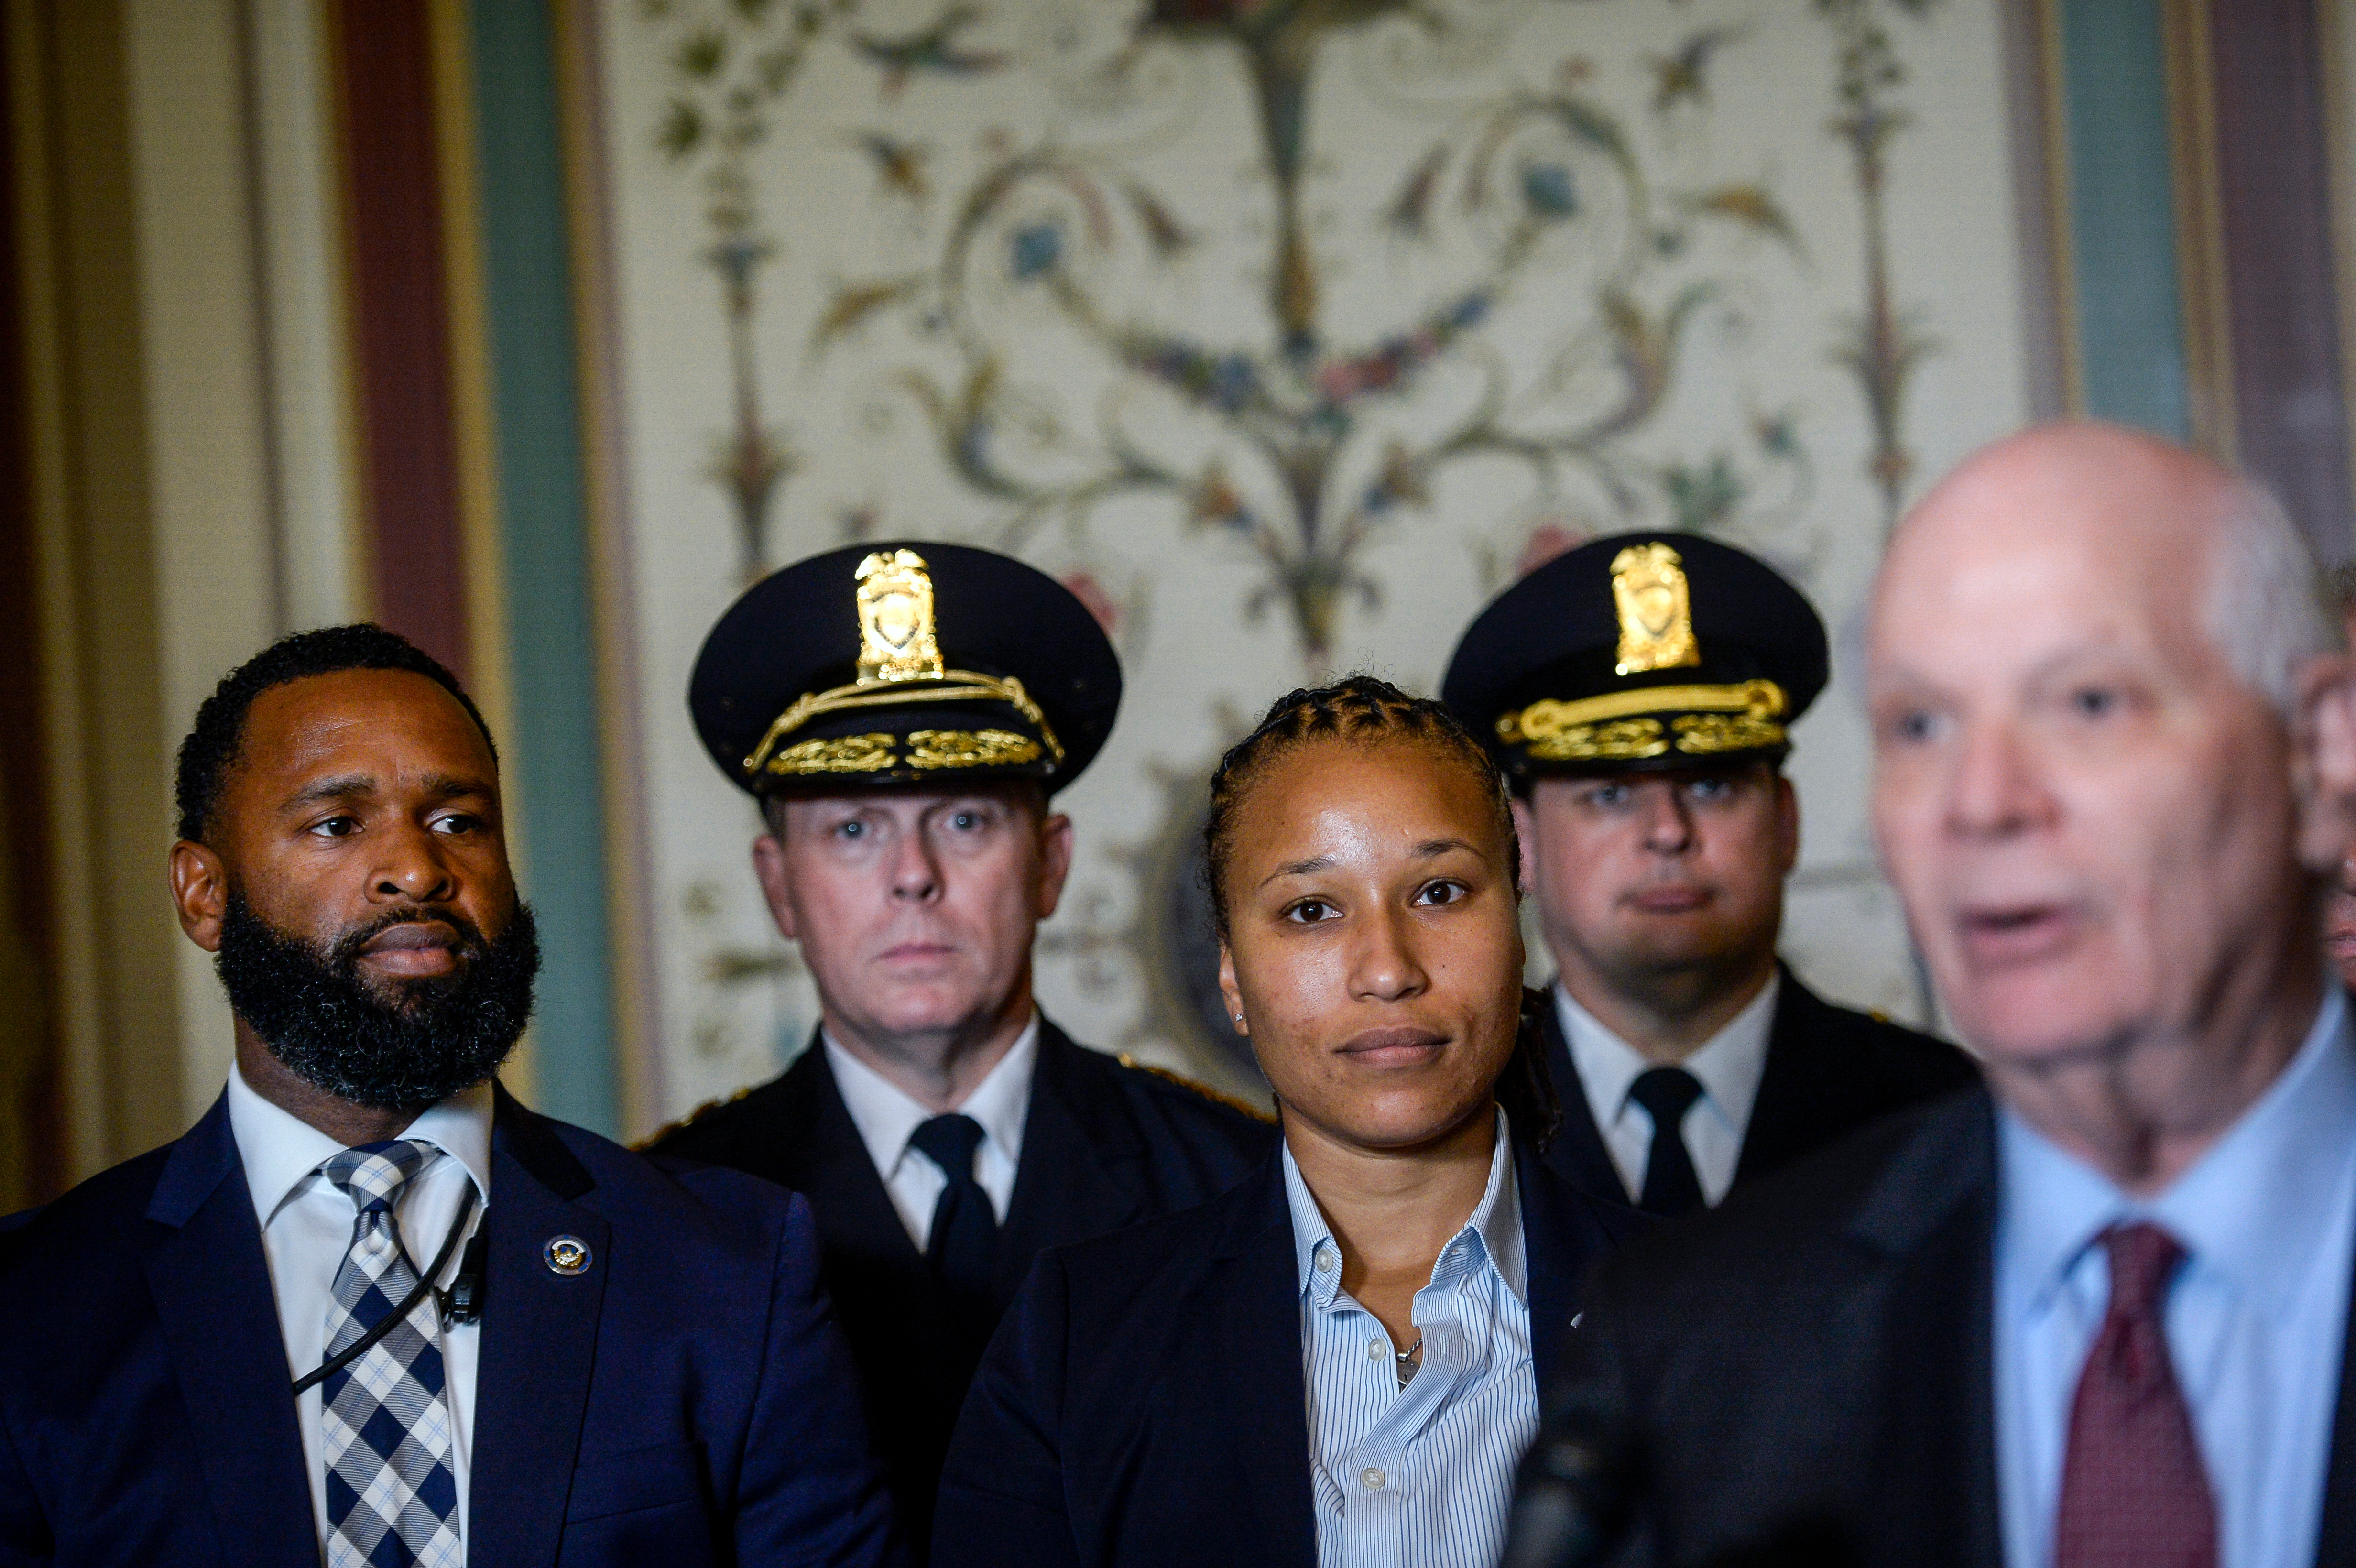 UNITED STATES - JULY 16: U.S. Capitol Police Special Agents David Bailey, left, and Crystal Griner stand as Sen. Ben Cardin, D-Md., presents them with the Law Enforcement Congressional Badge on Capitol Hill on Tuesday July 16, 2019. (Photo by Caroline Brehman/CQ Roll Call)